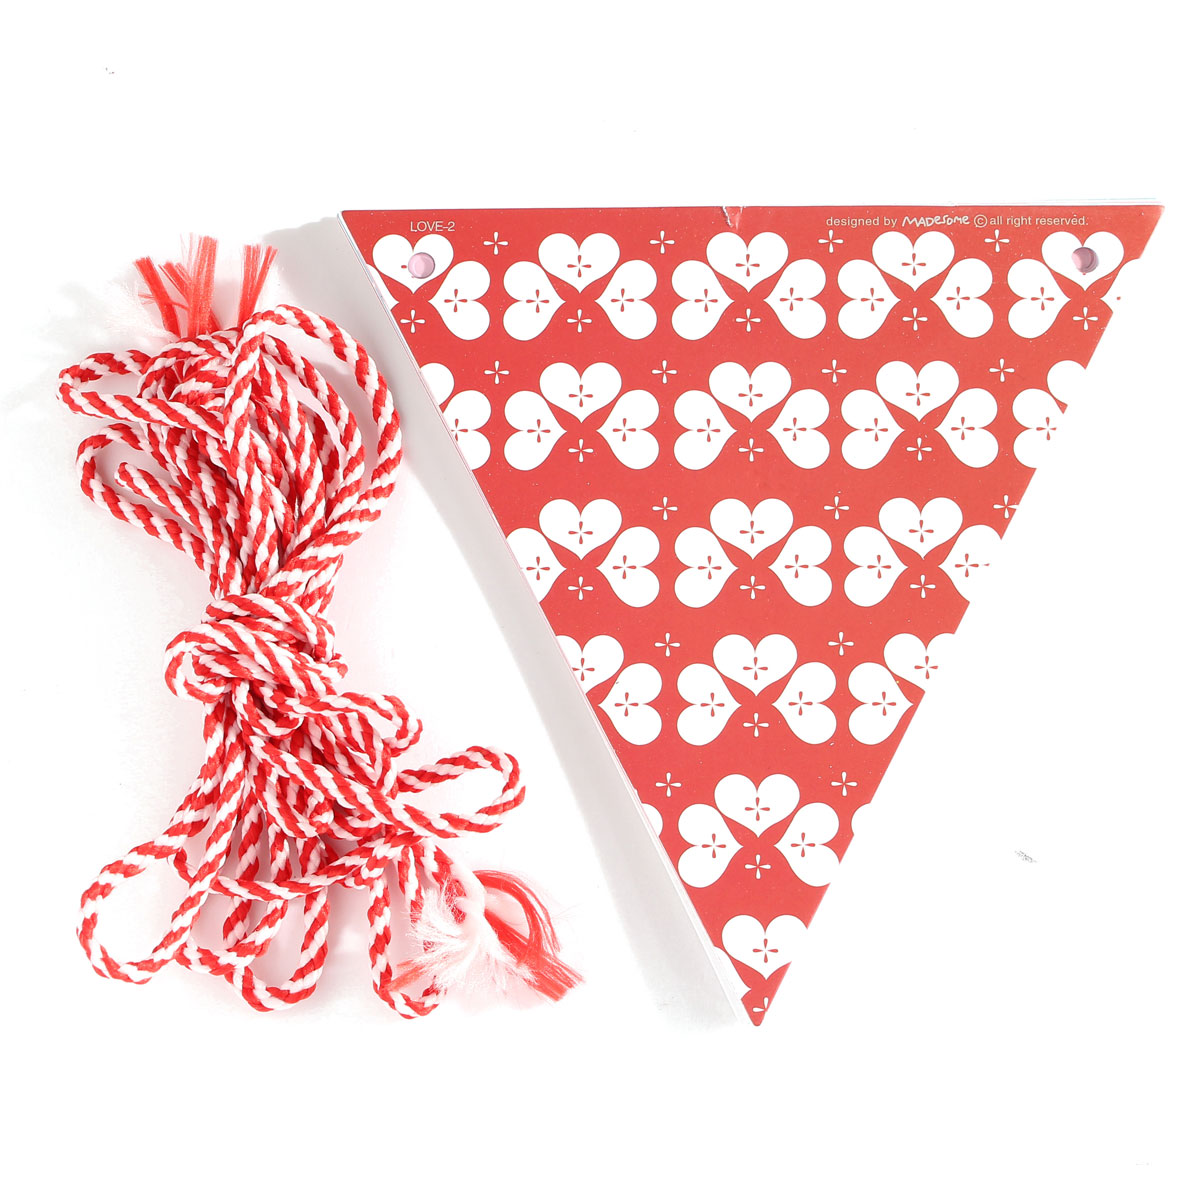 3M Paper Flags Polka Dot Love Heart Triangle Wedding Garland Bunting Burlap Decoration